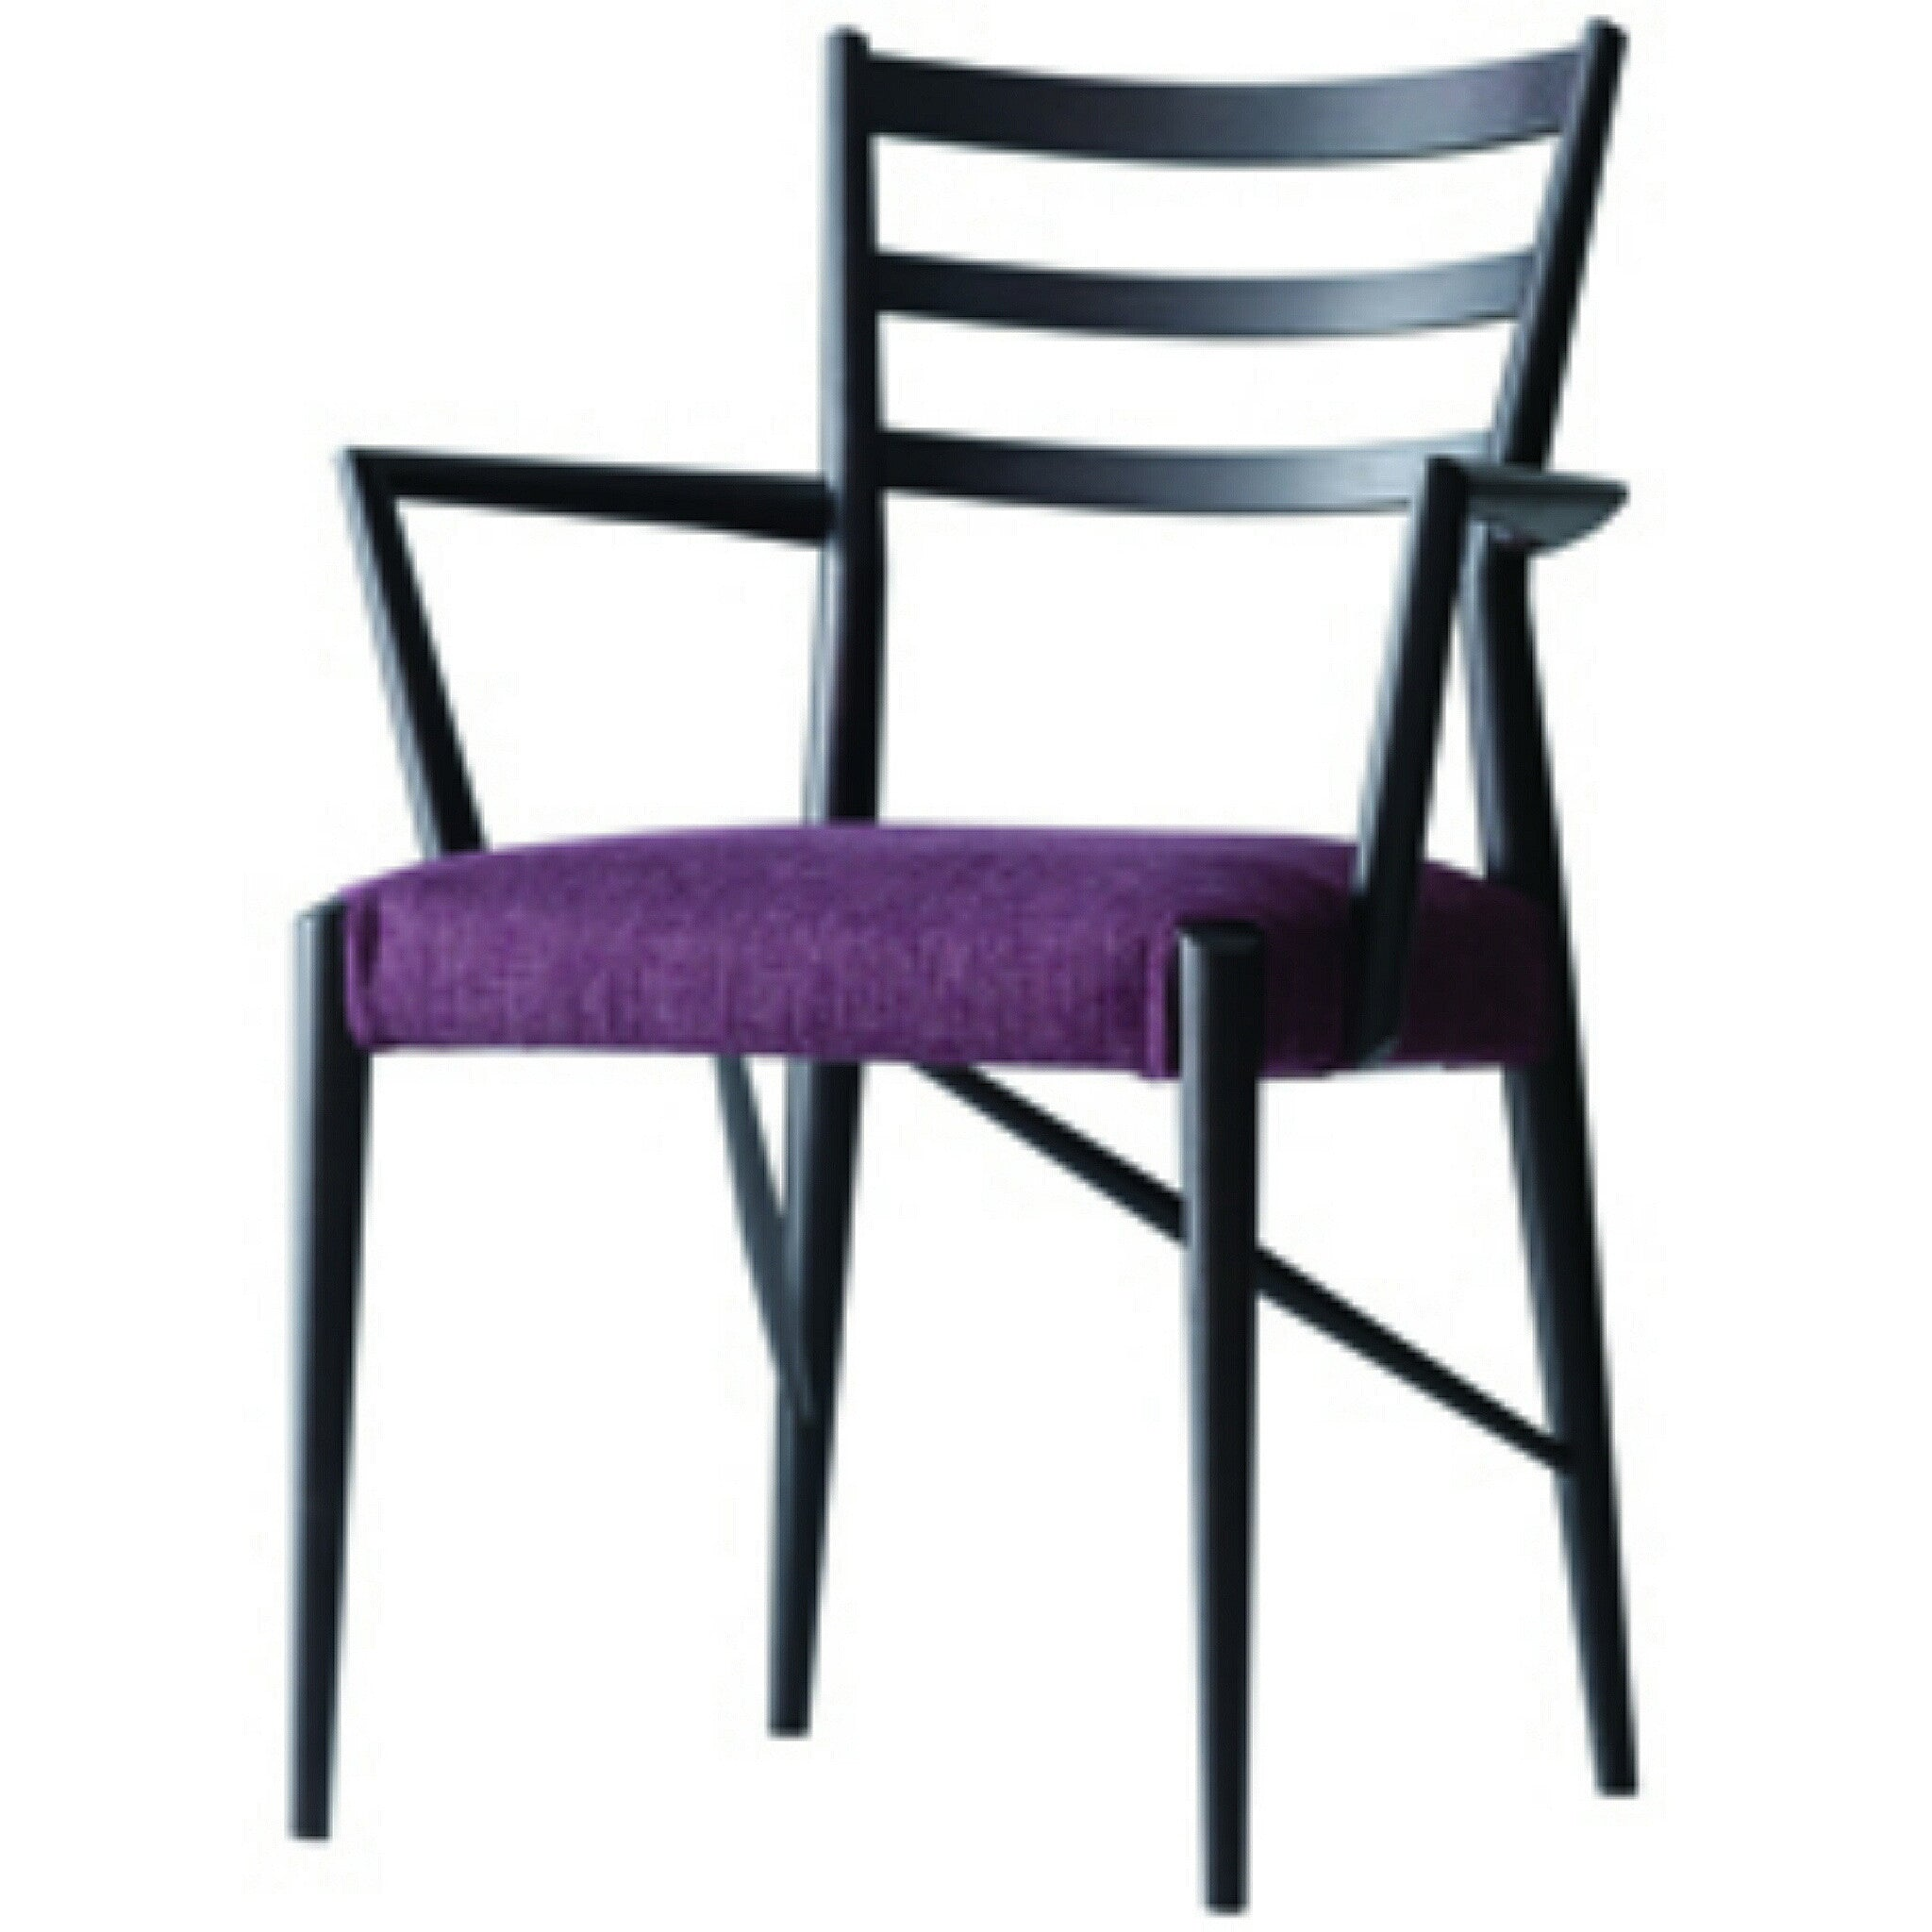 NB Chair 605 - Dining Chair - Nissin